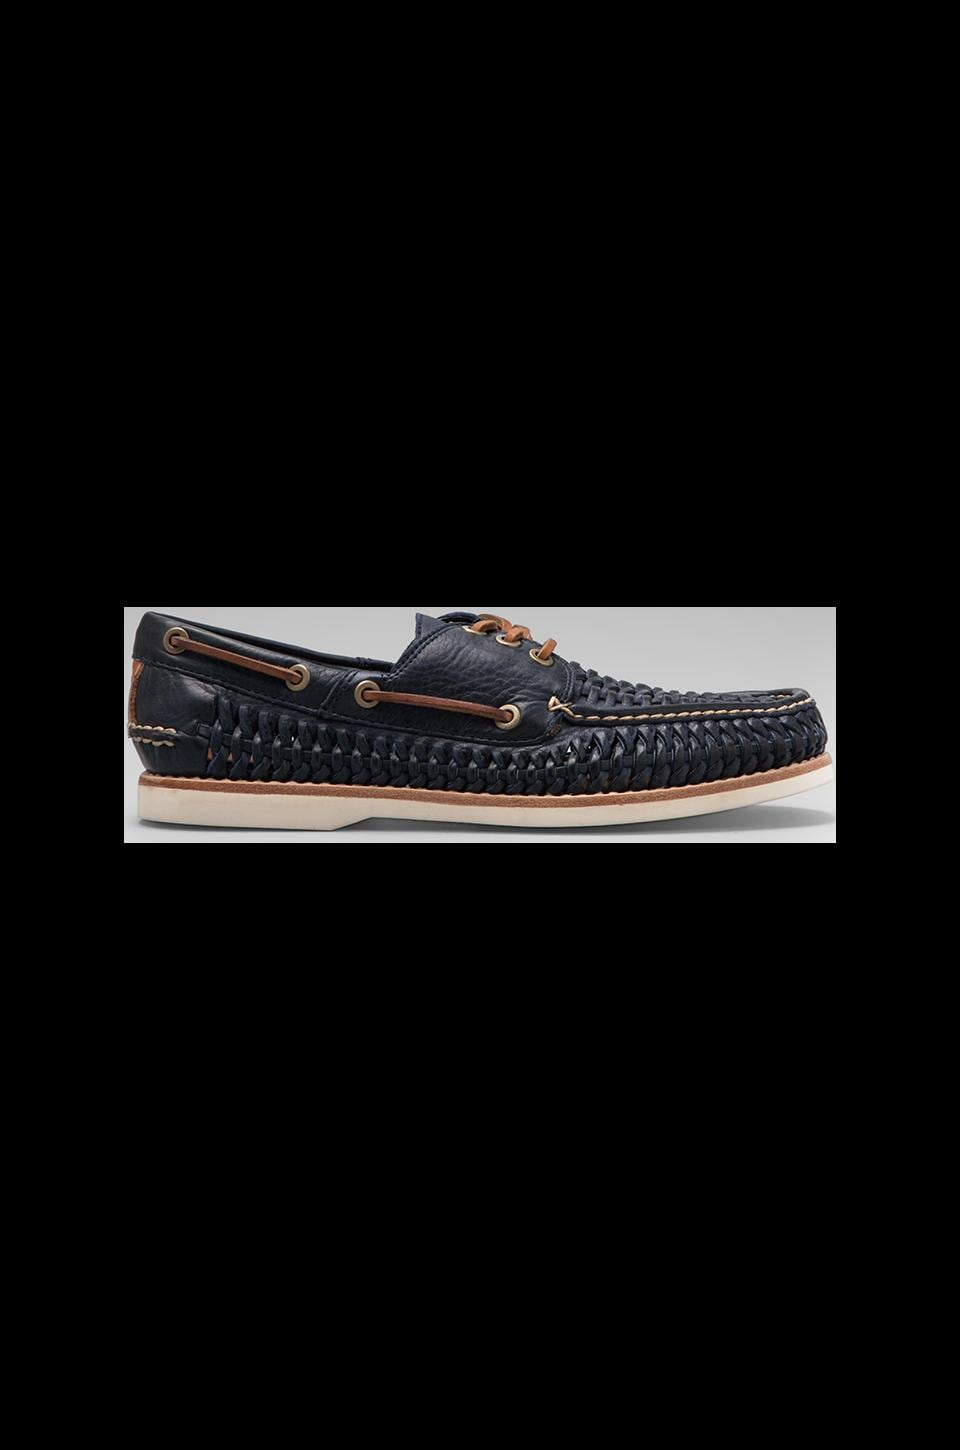 Frye Sully Woven Boat Shoe in Navy